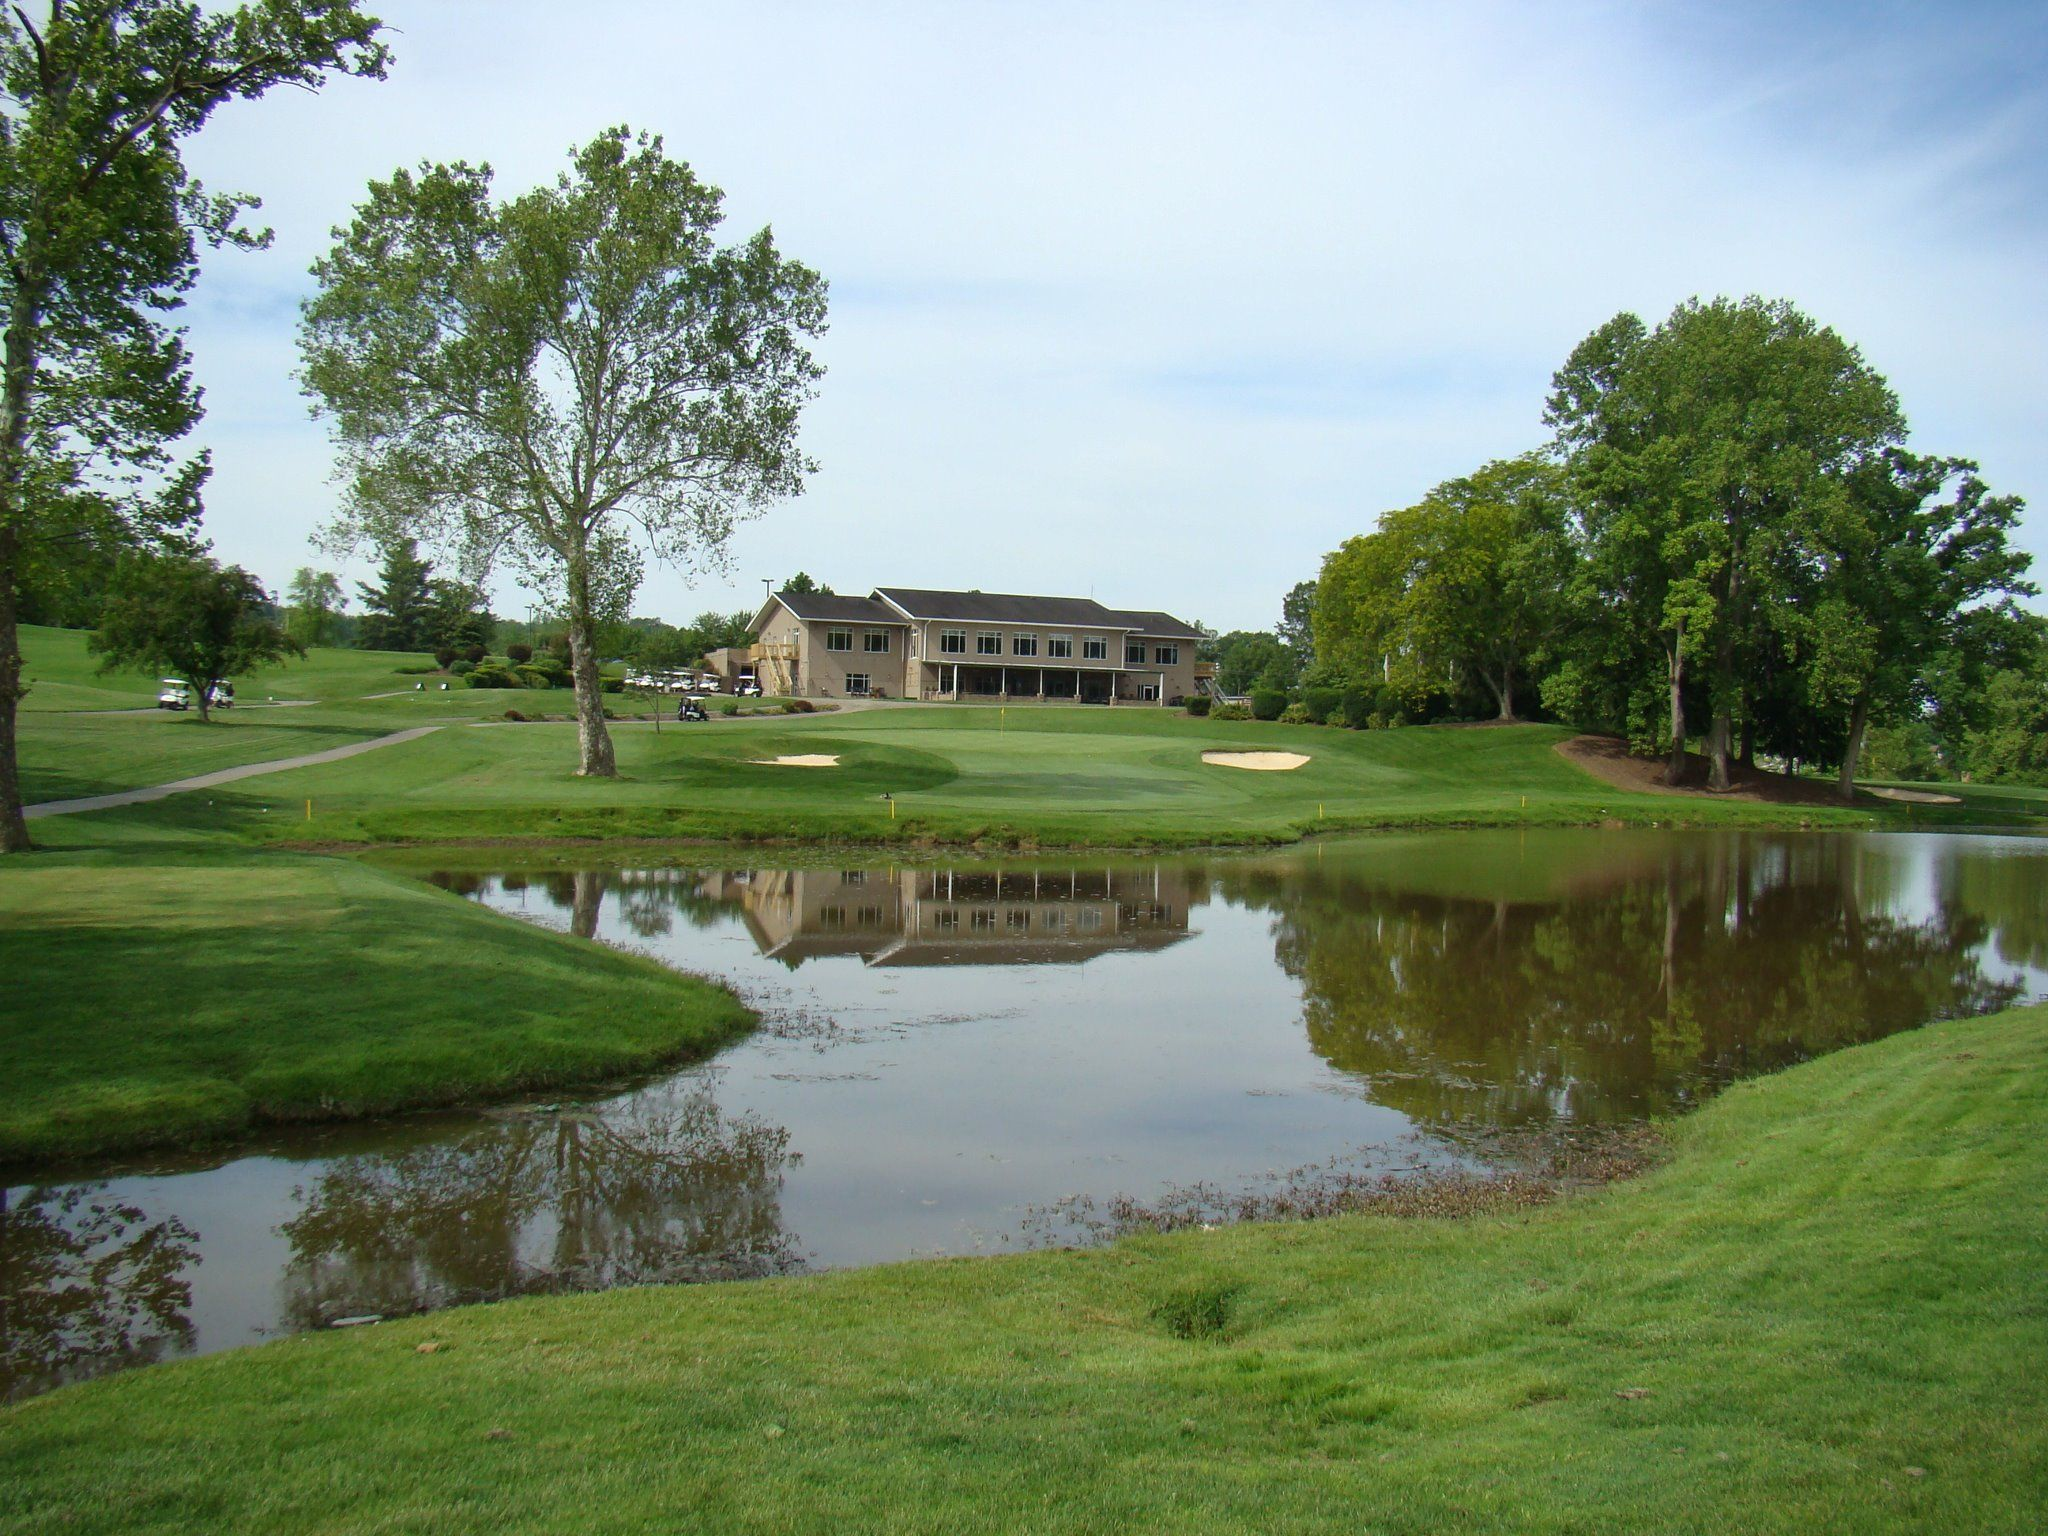 Sleepy Hollow Golf Club Hurricane Wv Hole 9 Looking At The Club House West Virginia Golf Courses Favorite Places